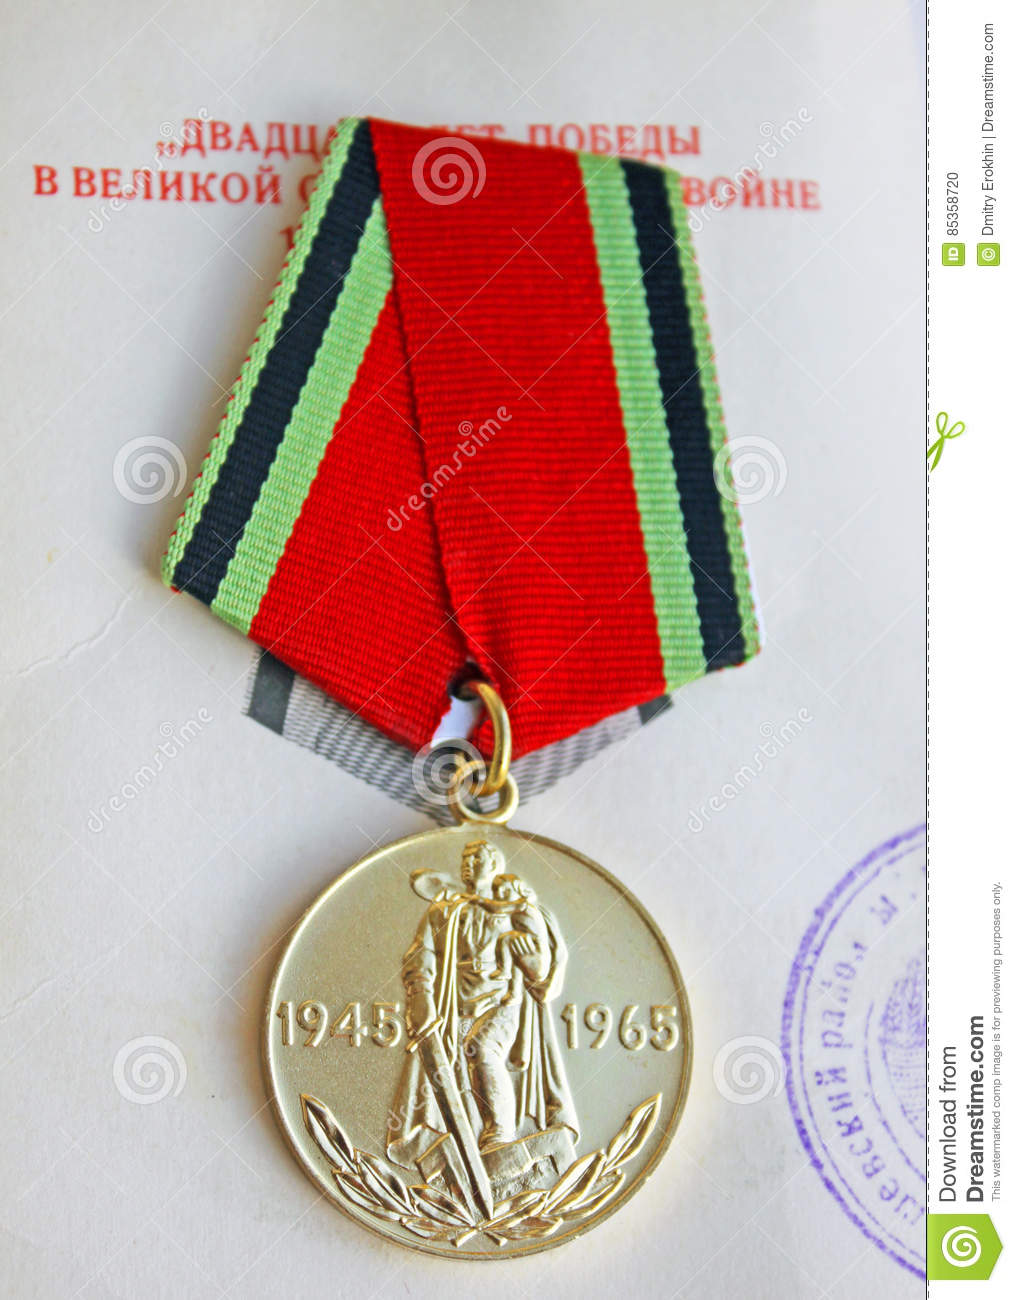 Medal of 20 years of the Red Army: photo, weight, who was awarded 6